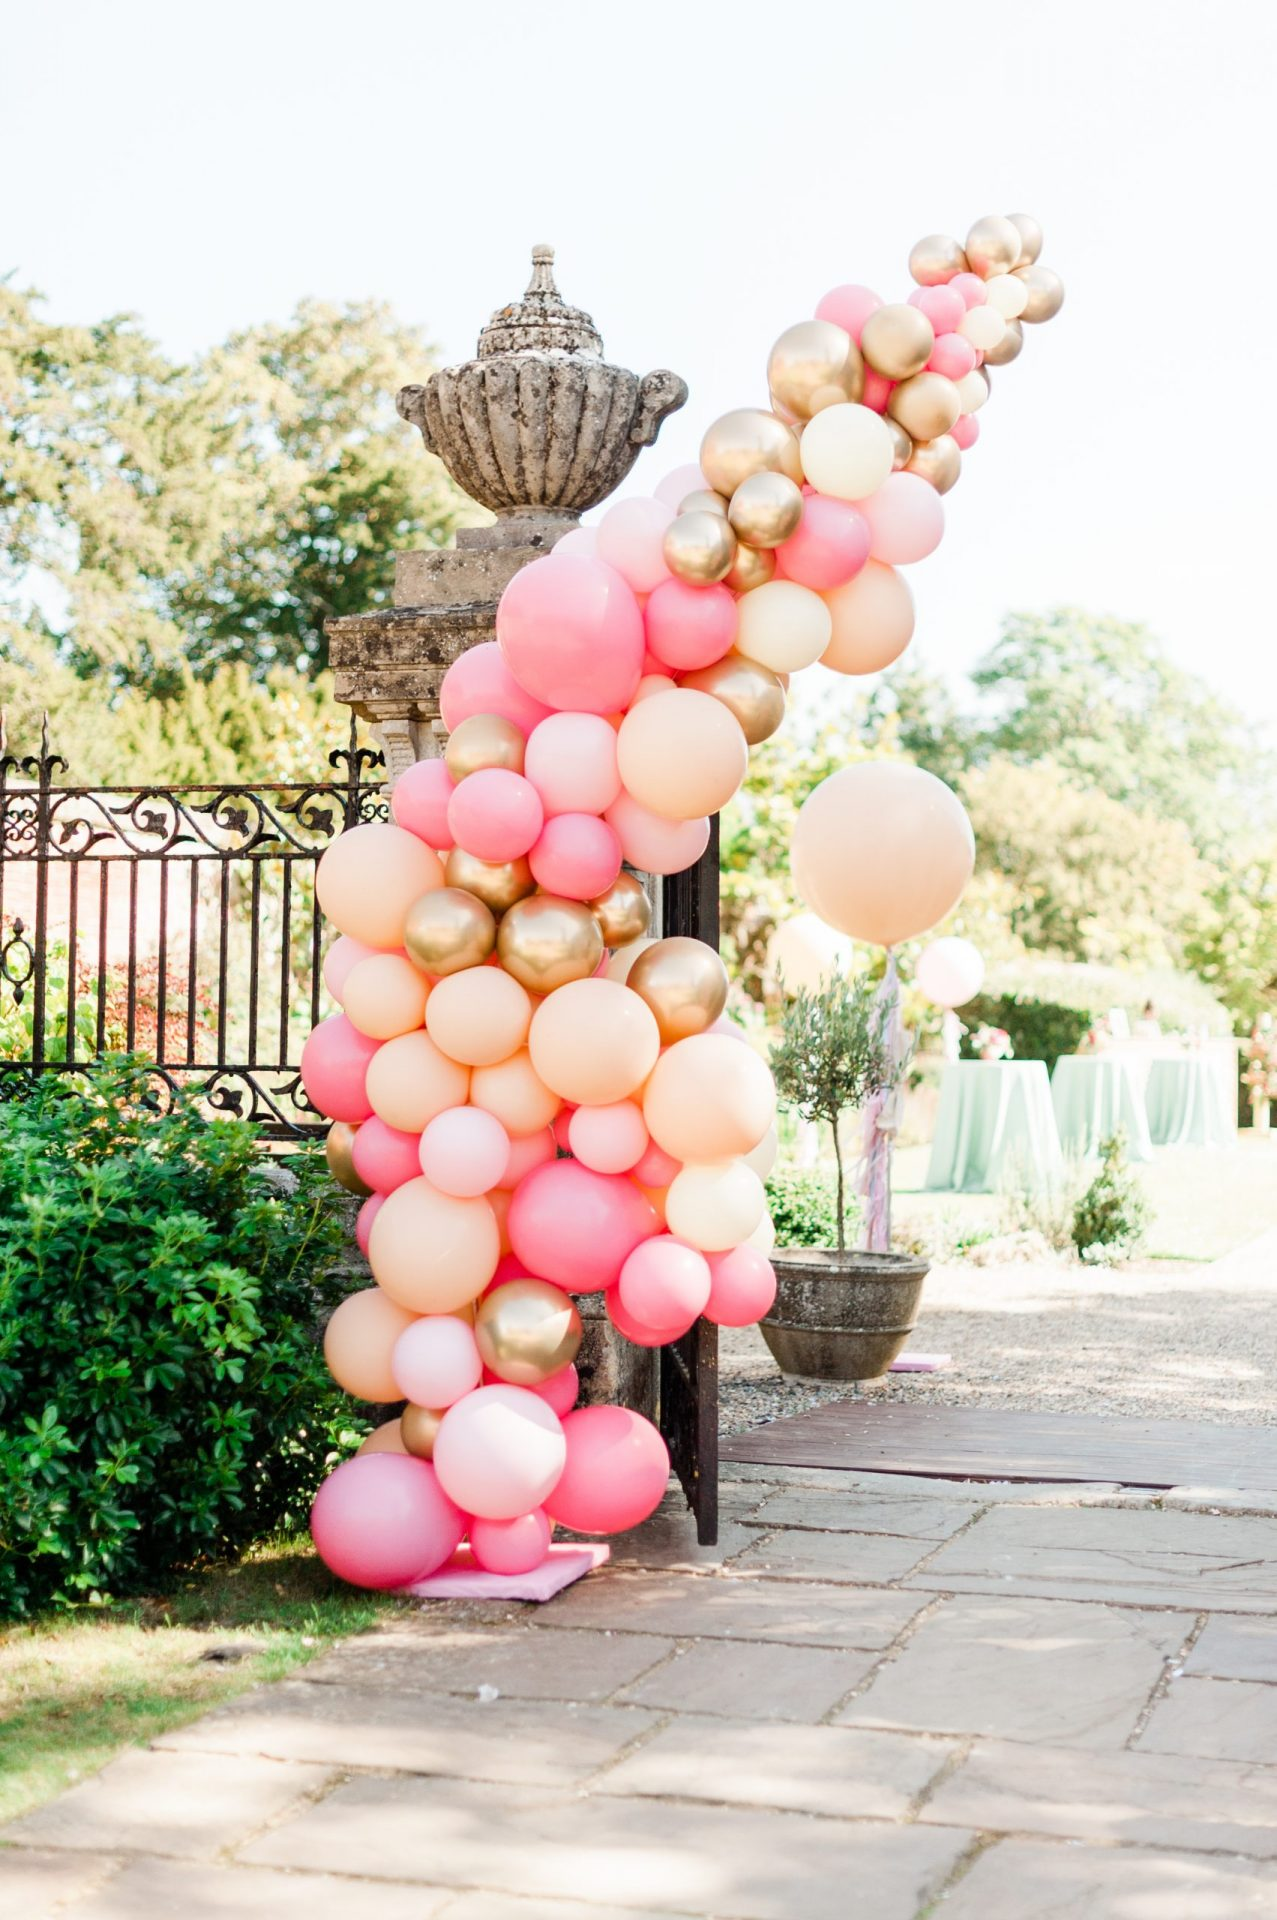 Half balloon arch at a gate entrance in pinks, beige and gold colours